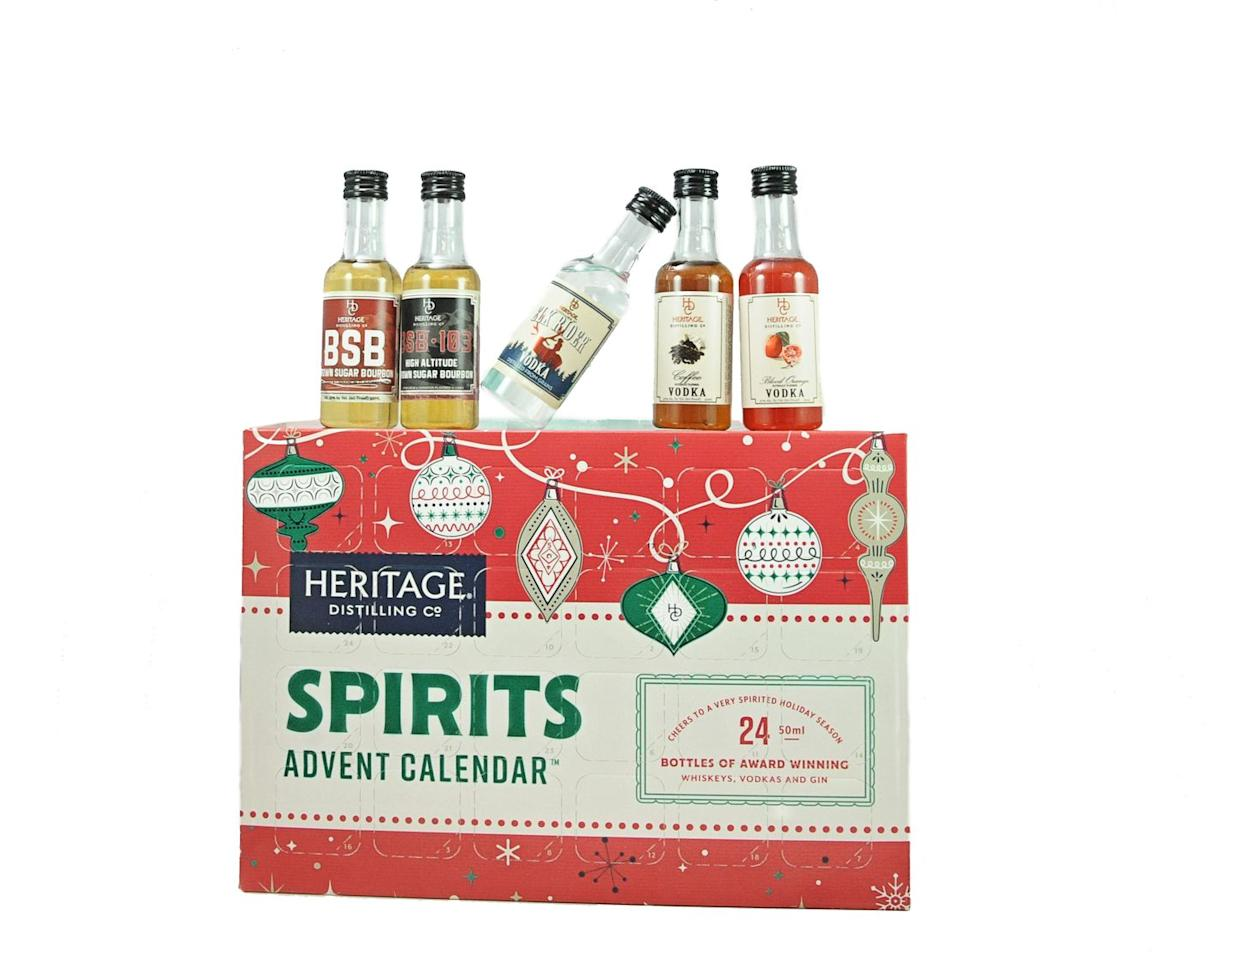 """<p><a rel=""""nofollow"""" href=""""https://heritagedistilling.com/products/spiritsadventcalendar"""">SHOP NOW </a> $59</p><p><strong>Best for:</strong> Your friend who still doesn't have a signature drink order.</p><p><strong>What's inside: </strong>A festive mix of 24 mini bottles of vodka, gin, and bourbon by Heritage Distilling Co.</p>"""